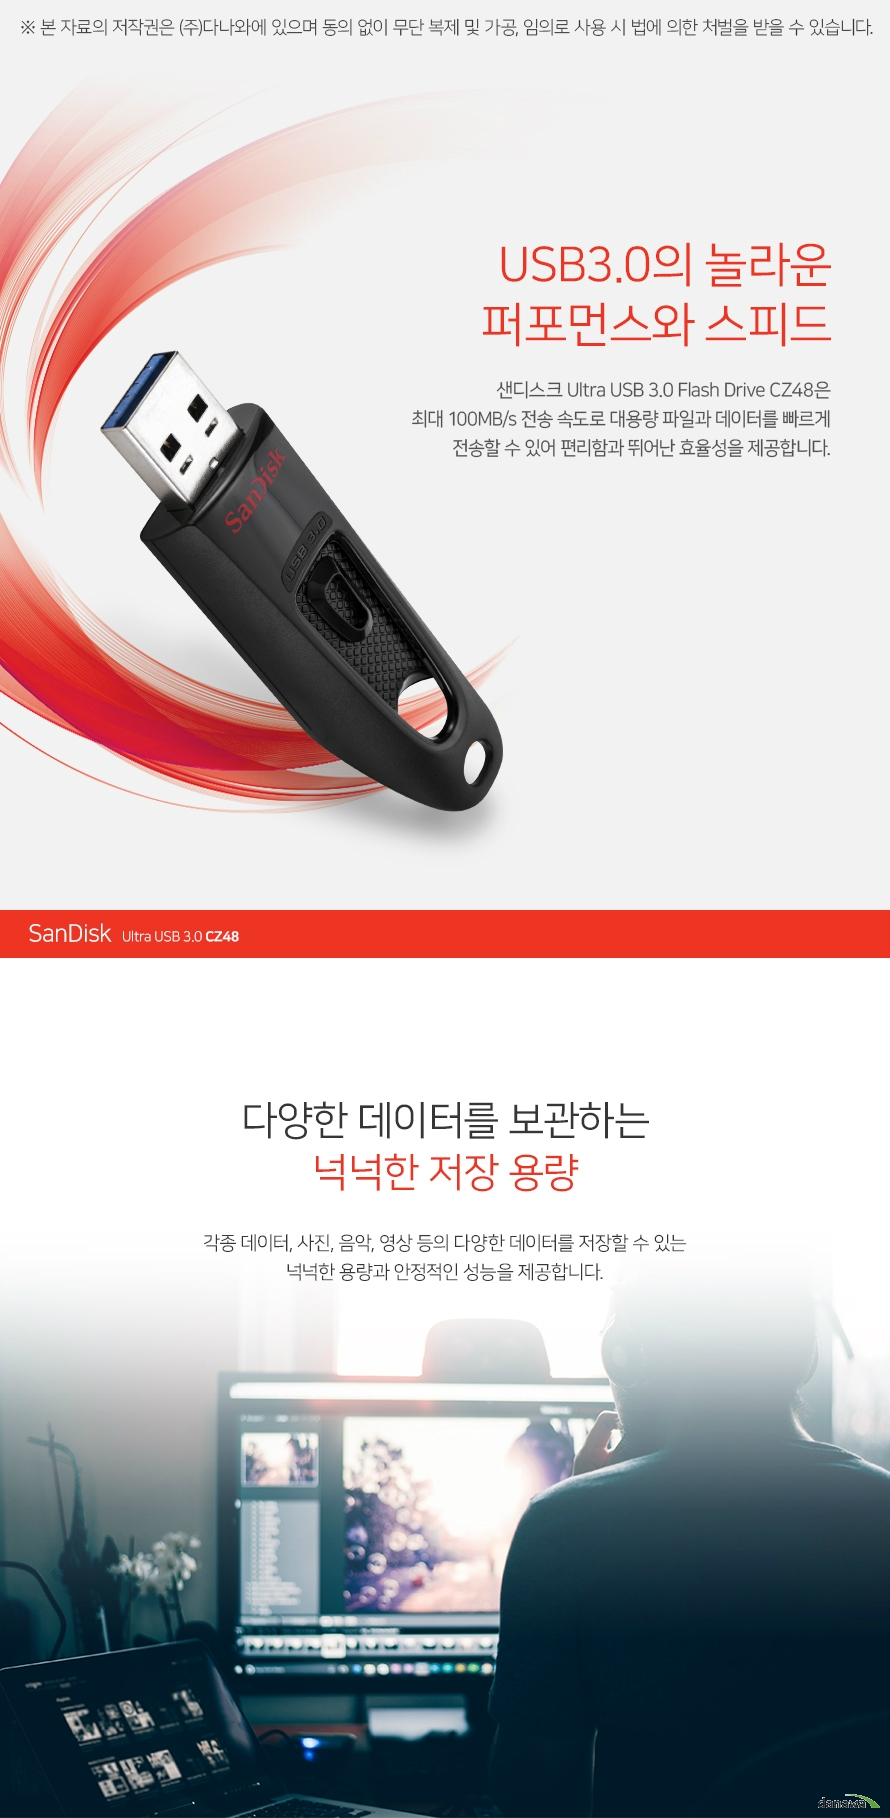 Sandisk CZ48 Ultra USB 3.0 Flash Drive (512GB)